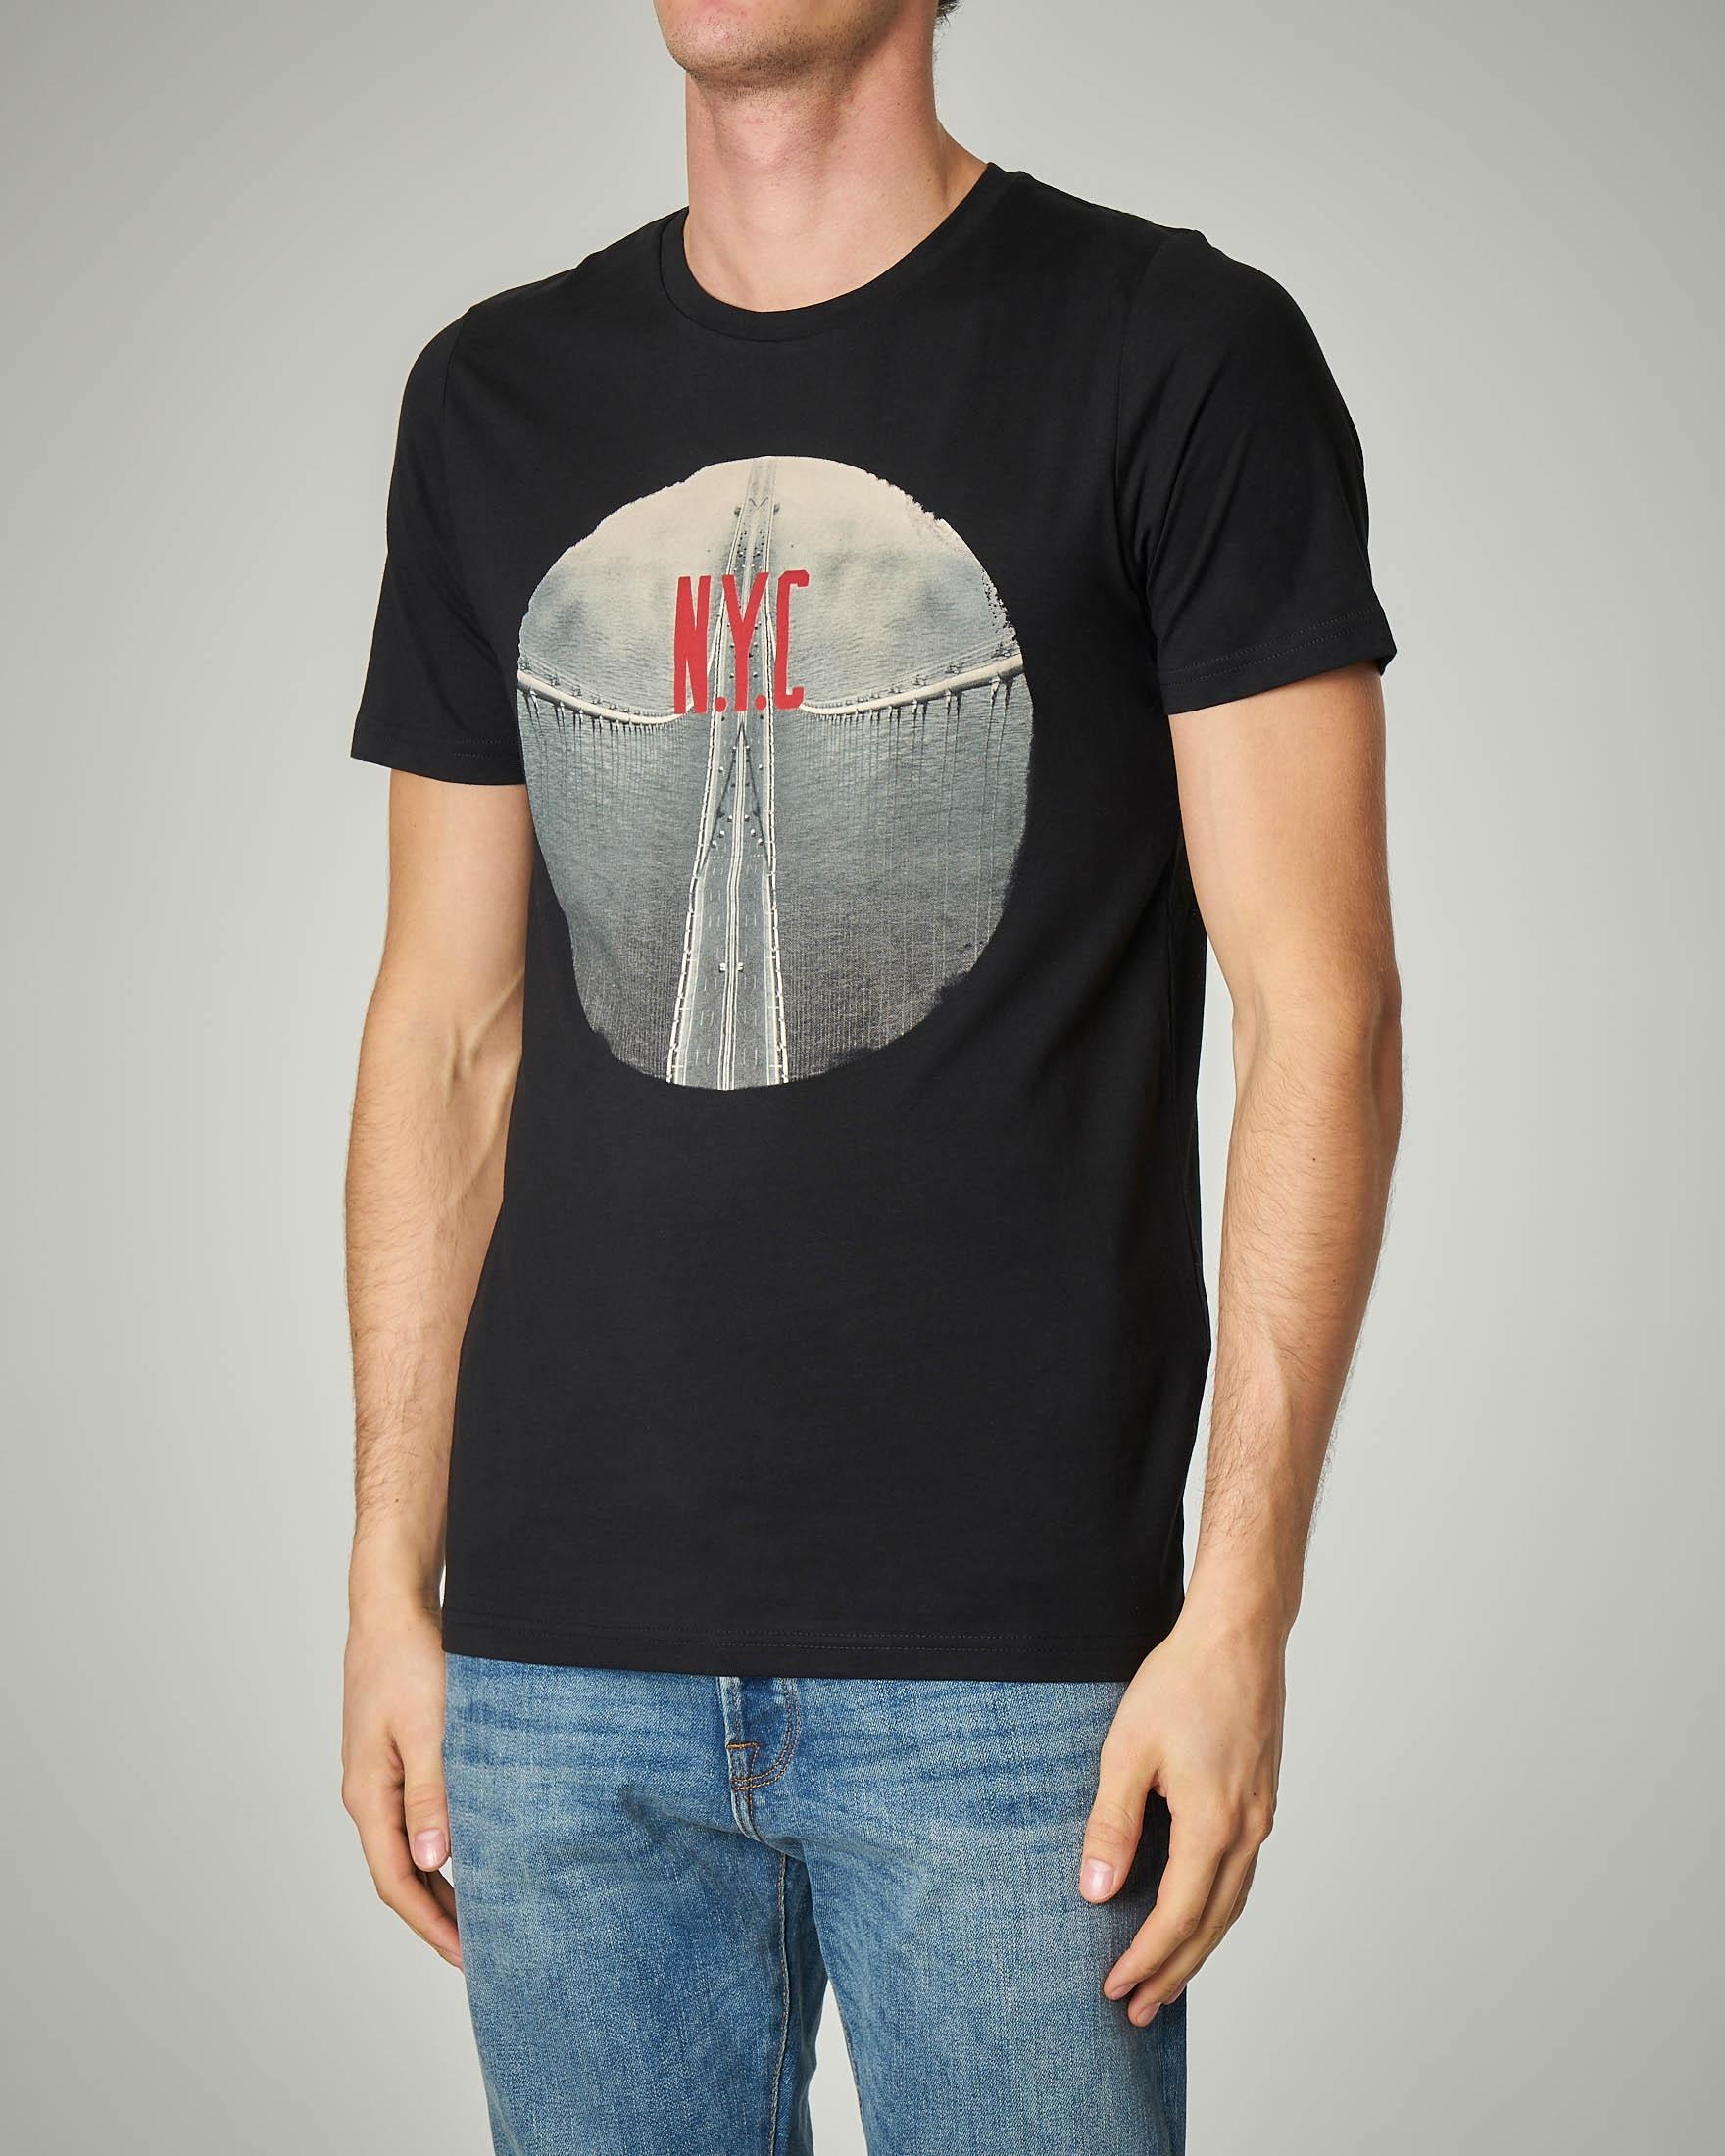 T-shirt nera con stampa ponte di N.Y.C